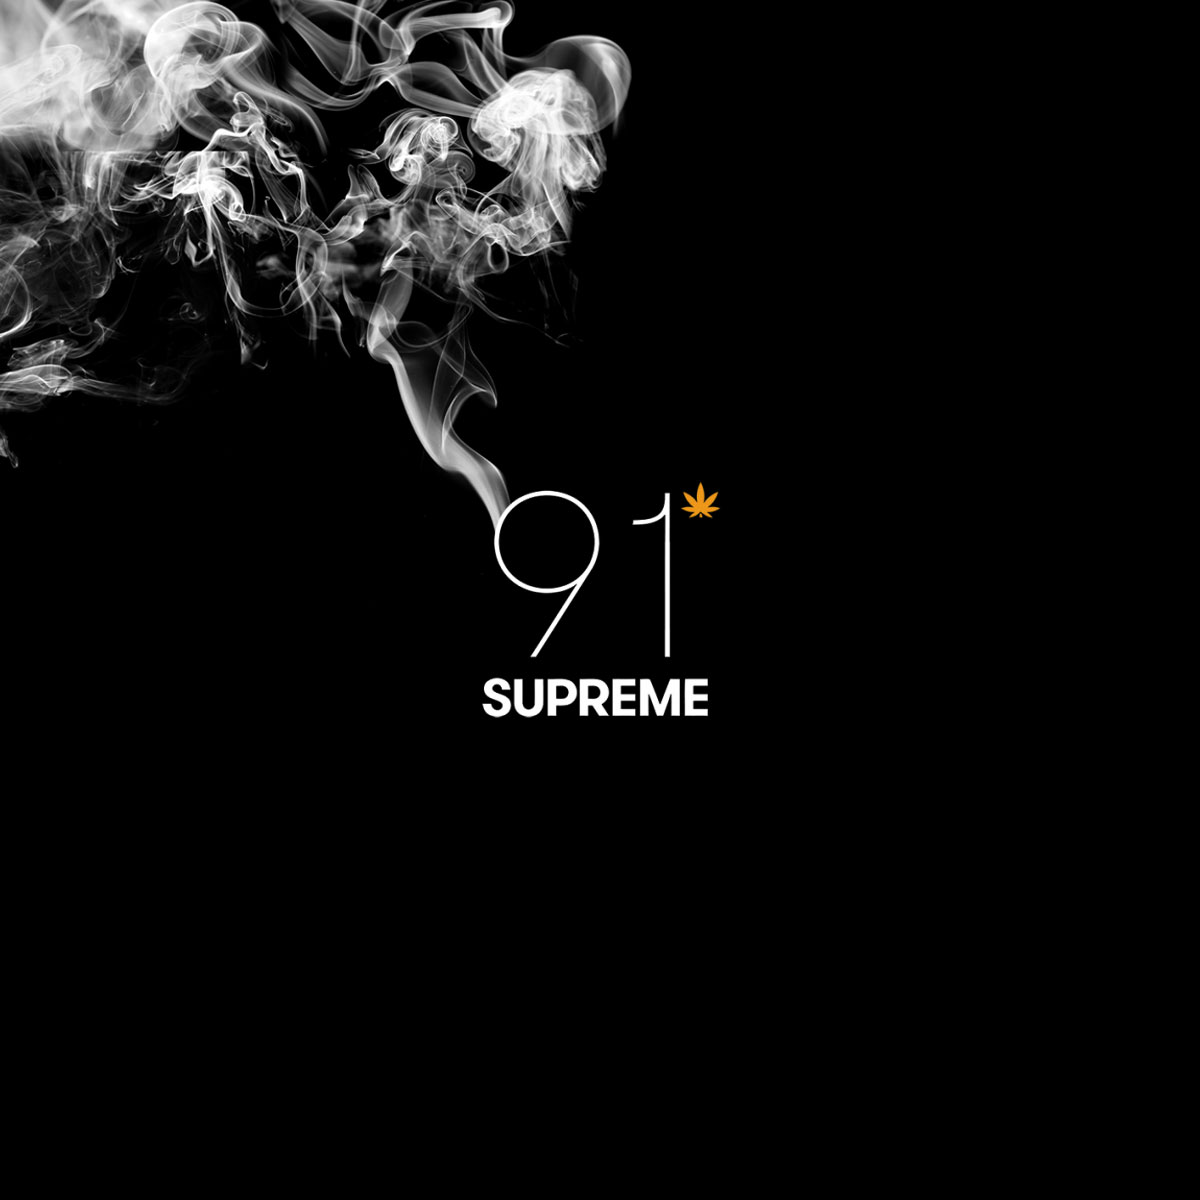 91 Supreme Vaporizer Cartridges by Green Society - Image © 2018 Green Society. All Rights Reserved.